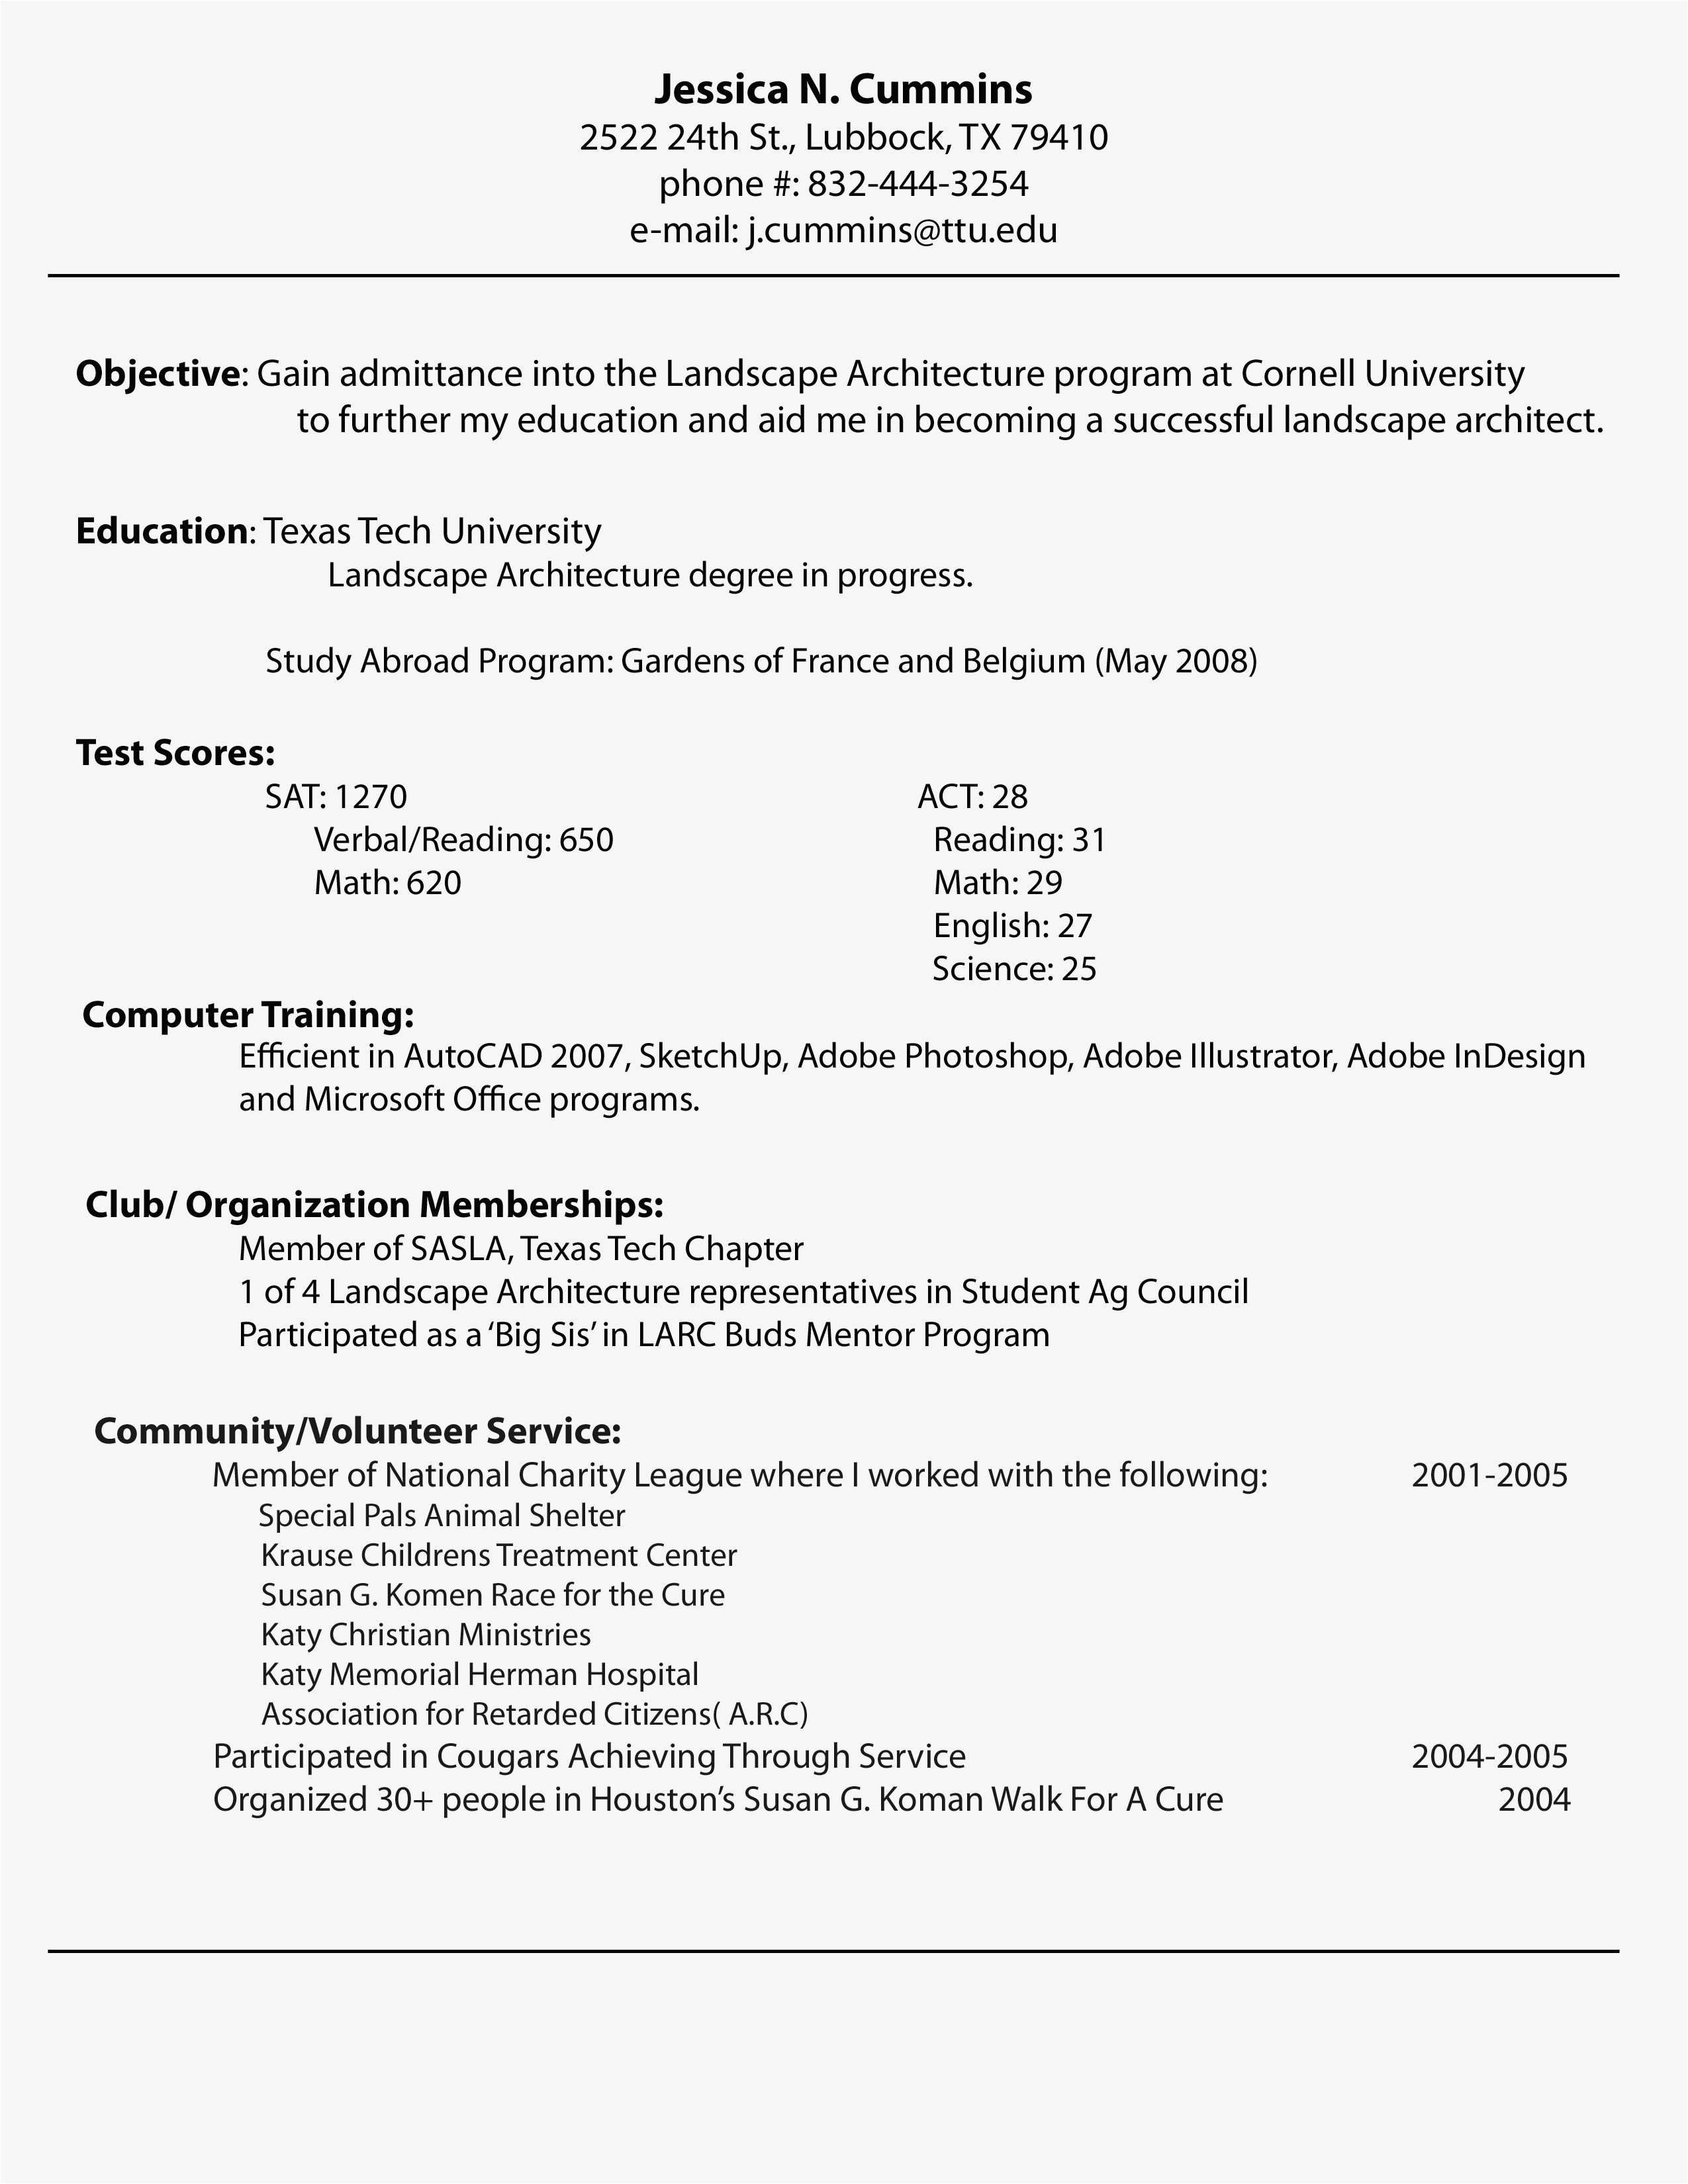 New Read Cover Letter Examples Cover letter for resume